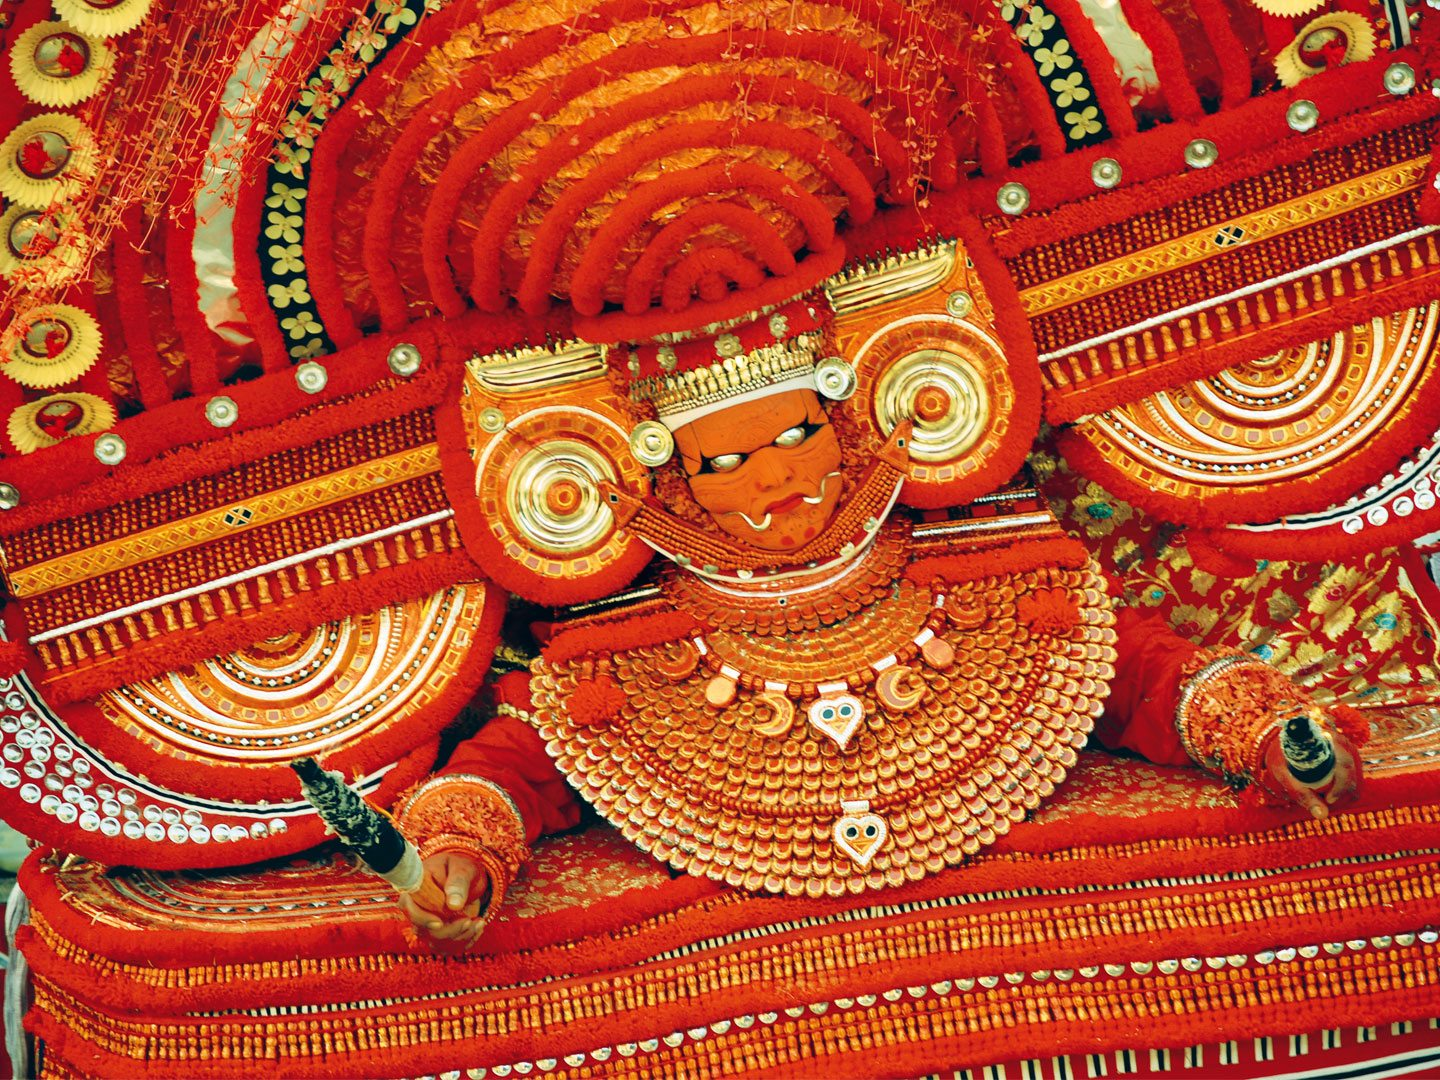 Muchilottu Bhagvathy is said to be so fierce that her eyes unleash fire. The Theyyam performer wears eye masks of silver with the tiniest pinhole to see through. Photo: Aliyeh Rizvi